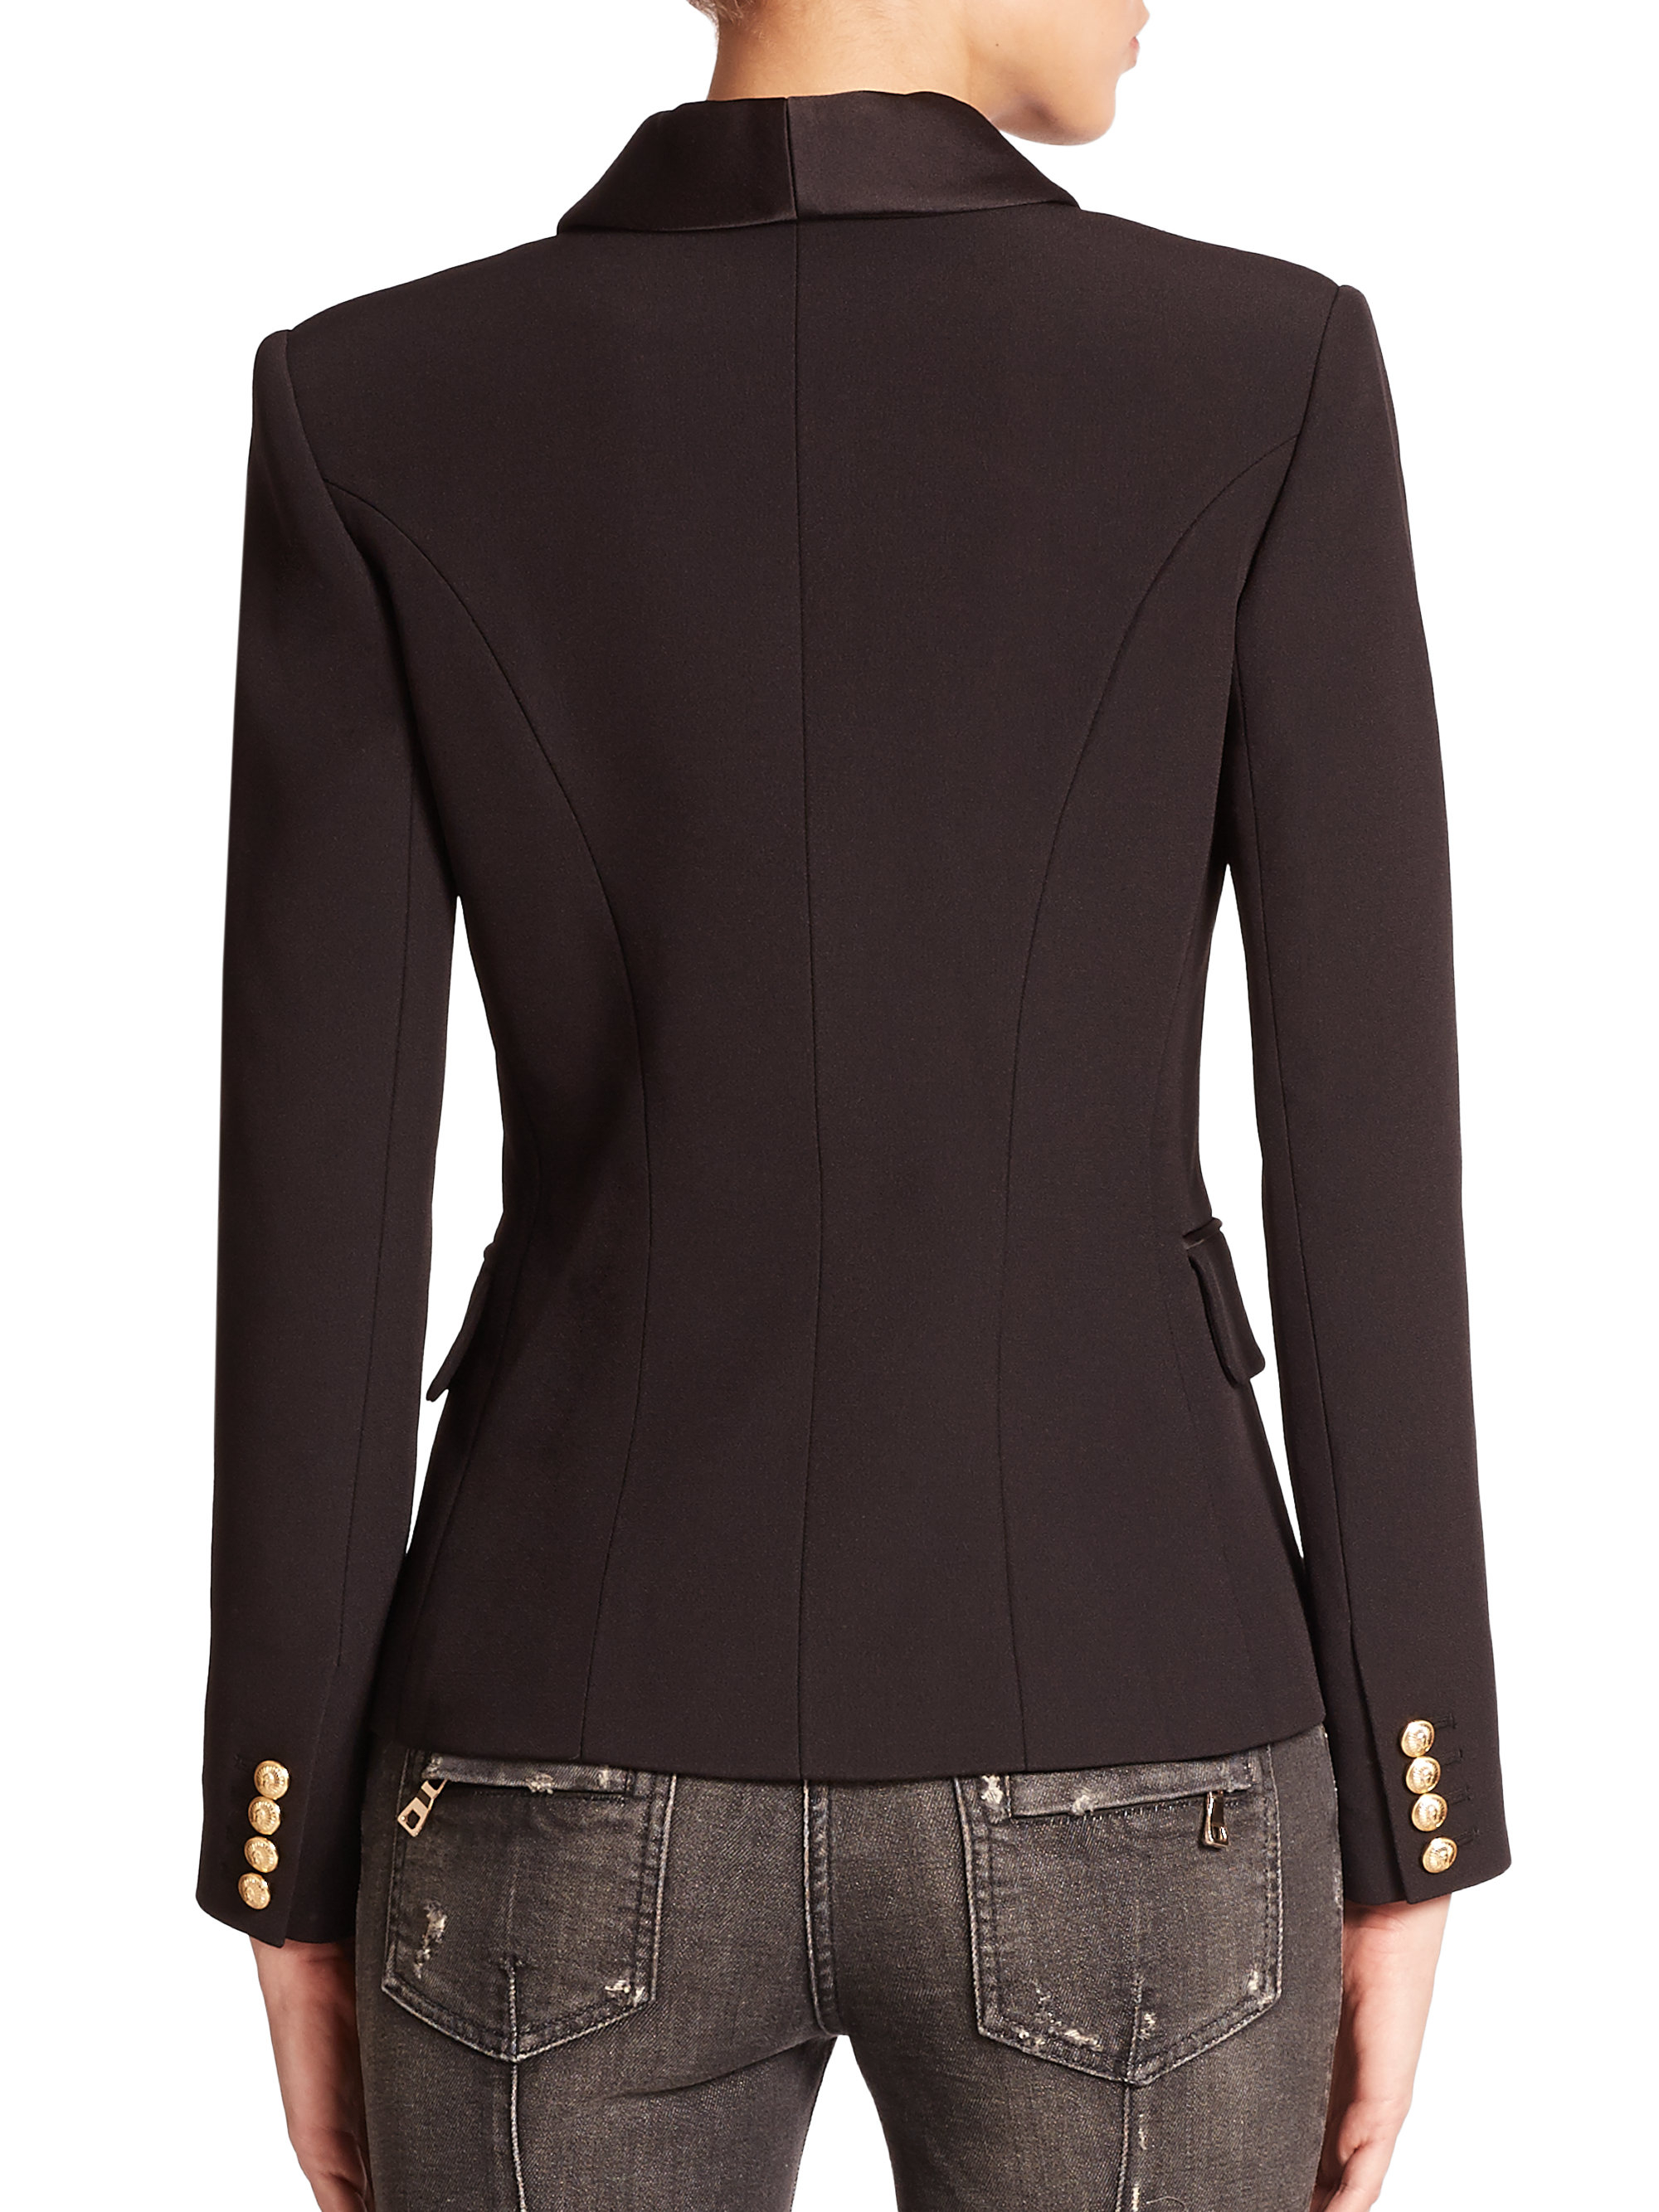 Balmain Short Dress | Balmain Double Breasted Blazer | Leather Double Breasted Jacket